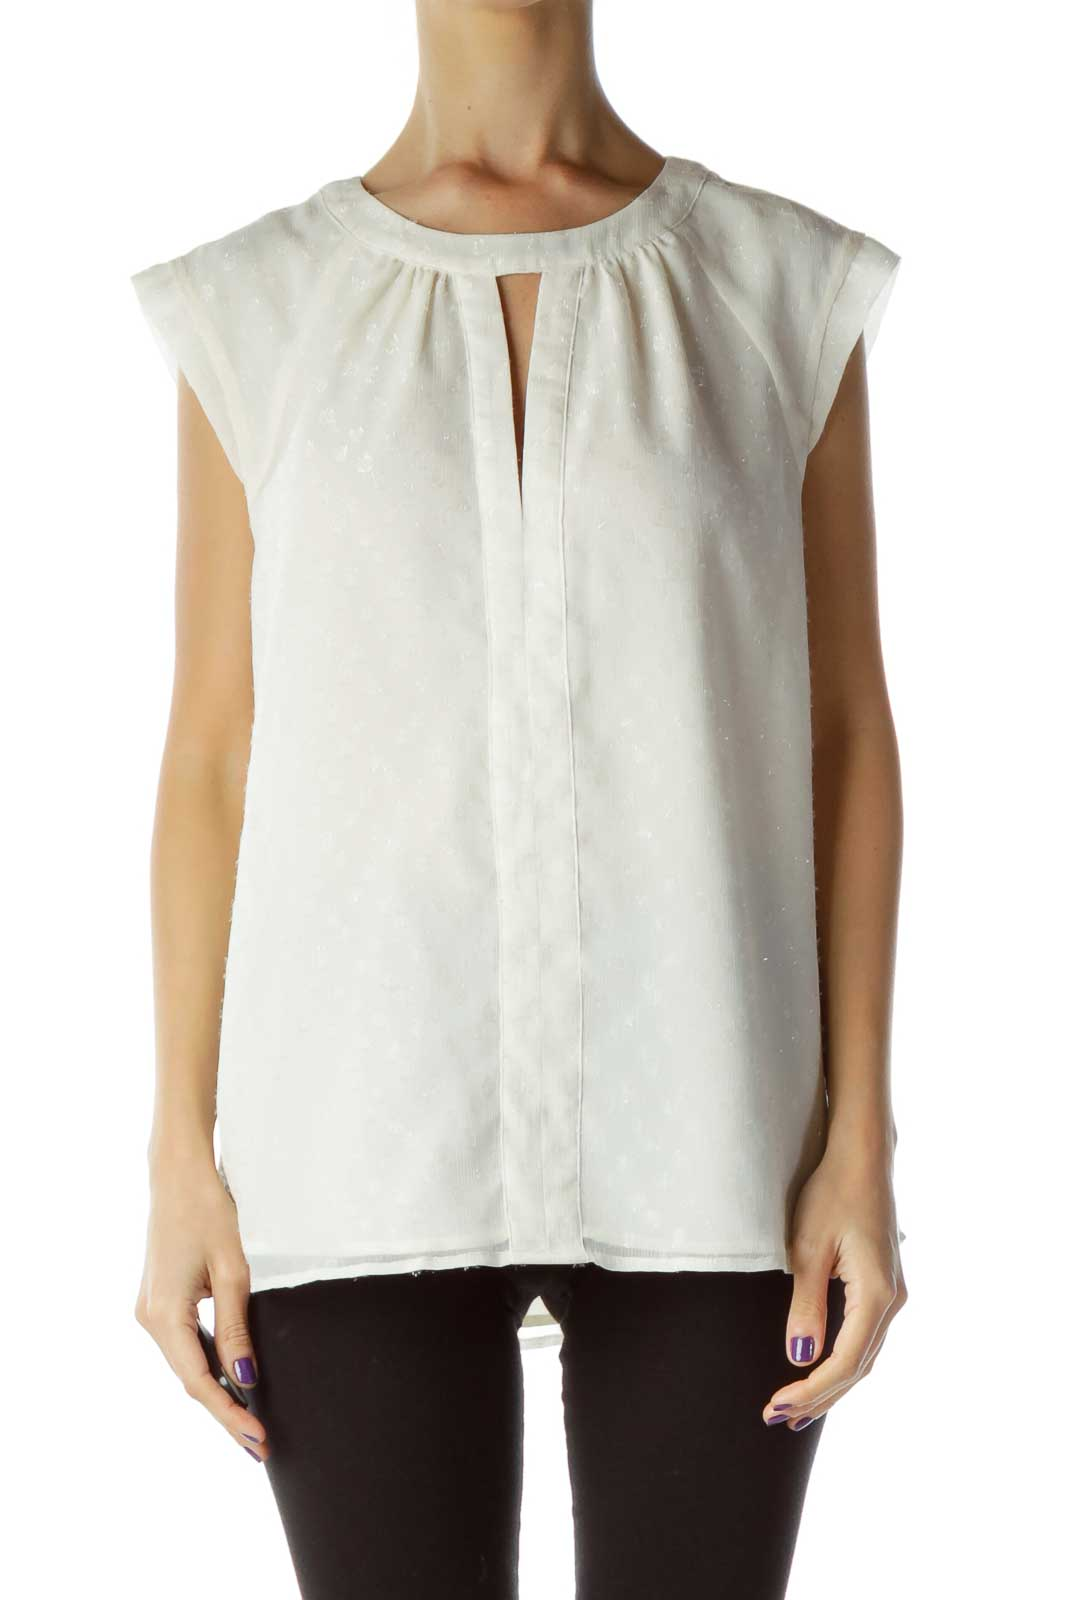 Cream Sleeveless Blouse with Shiny Detail